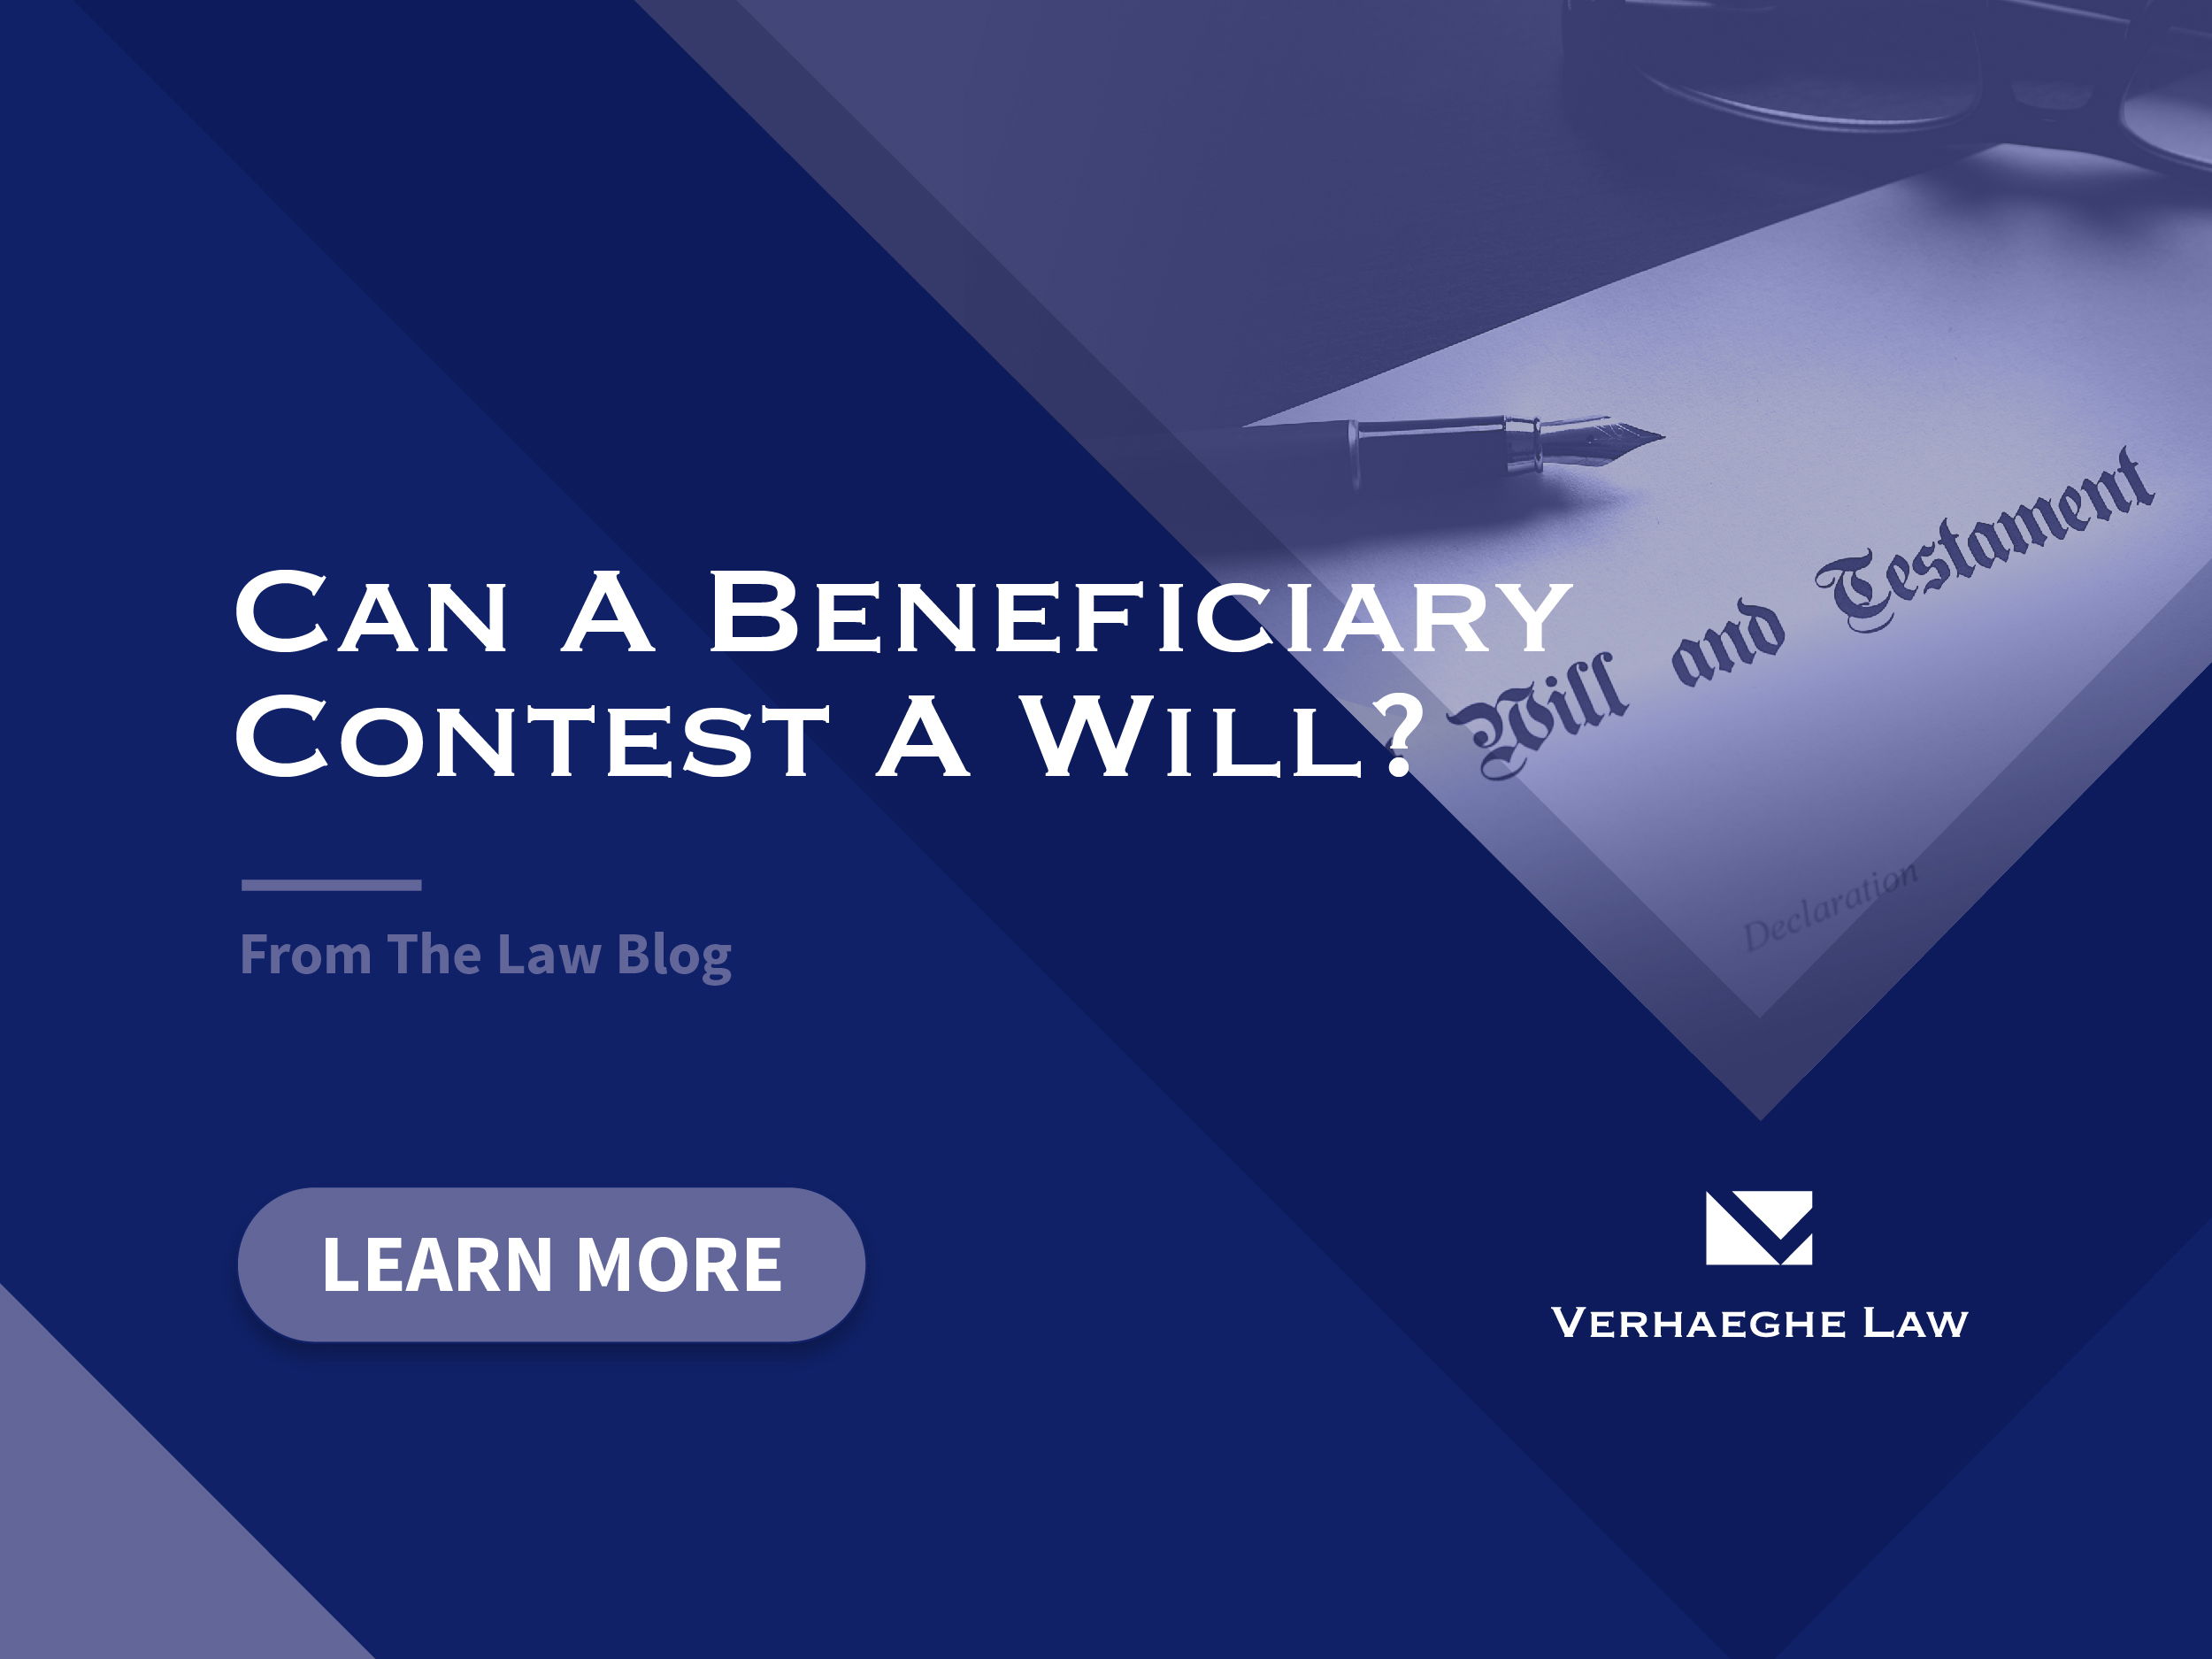 Can a Beneficiary Contest a Will